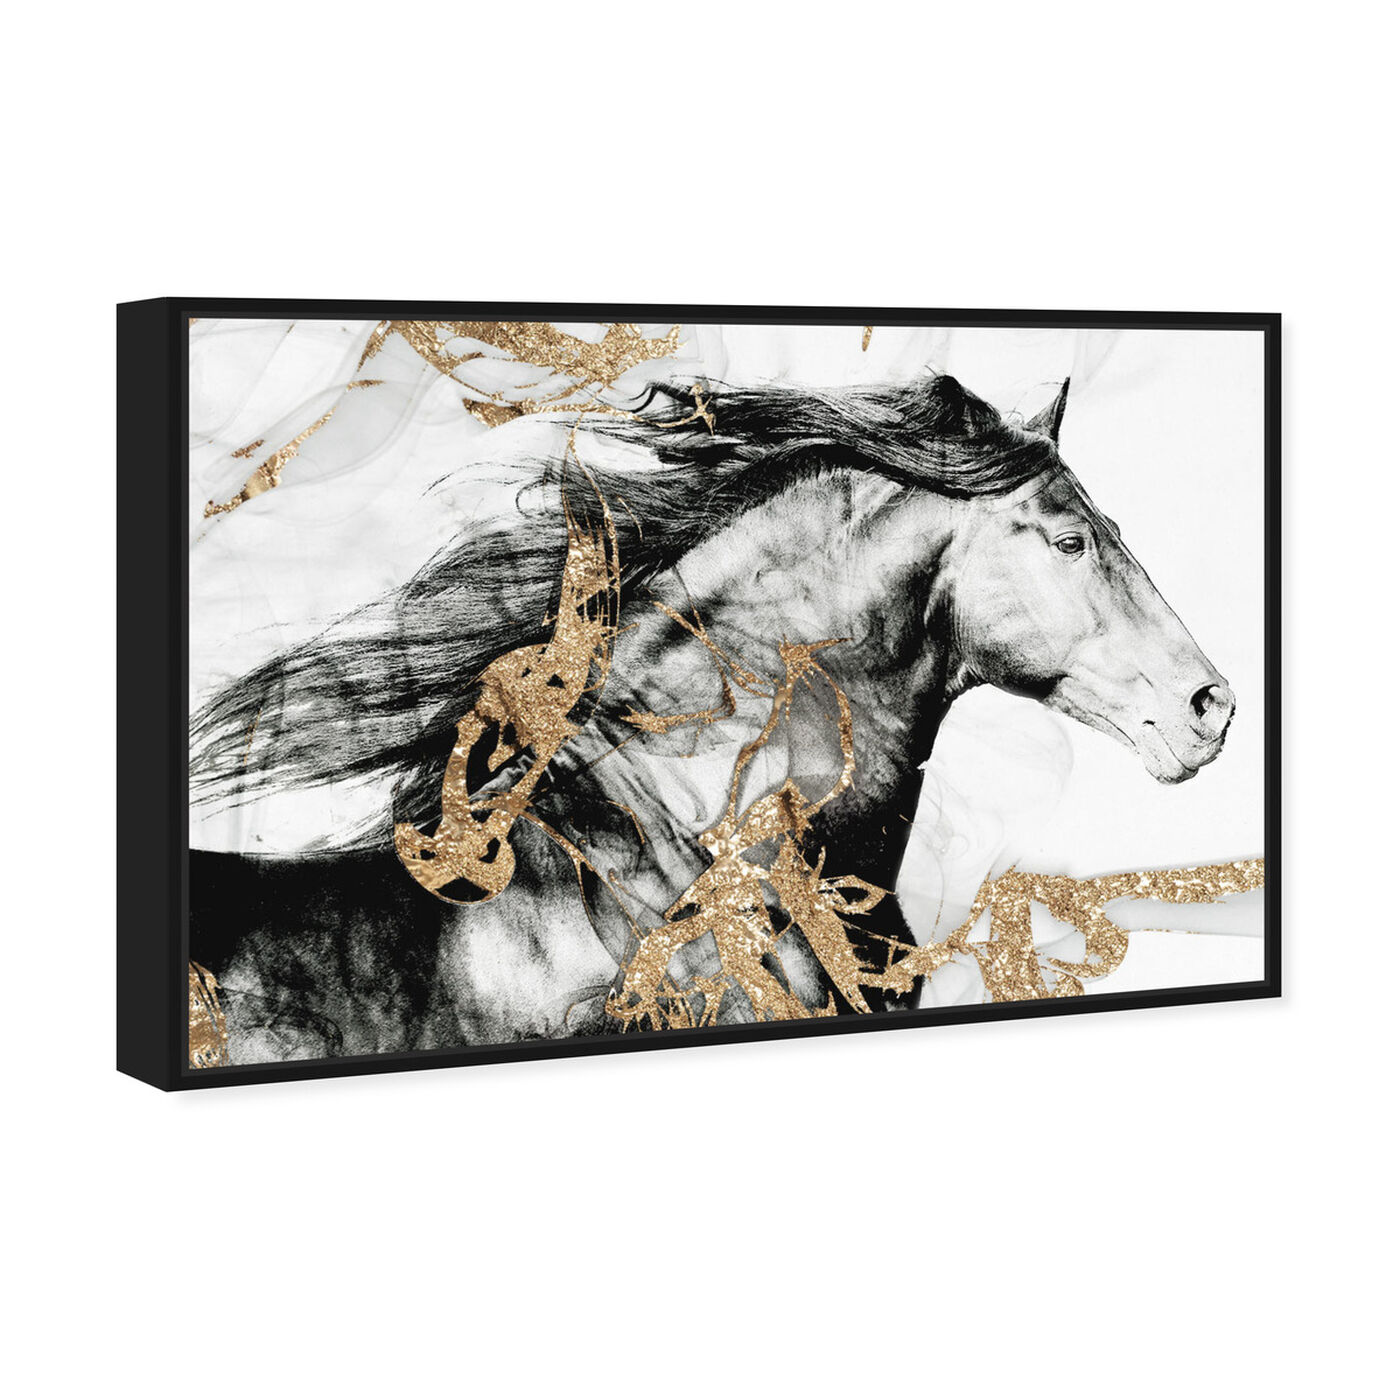 Angled view of Gold Beauty featuring animals and farm animals art.